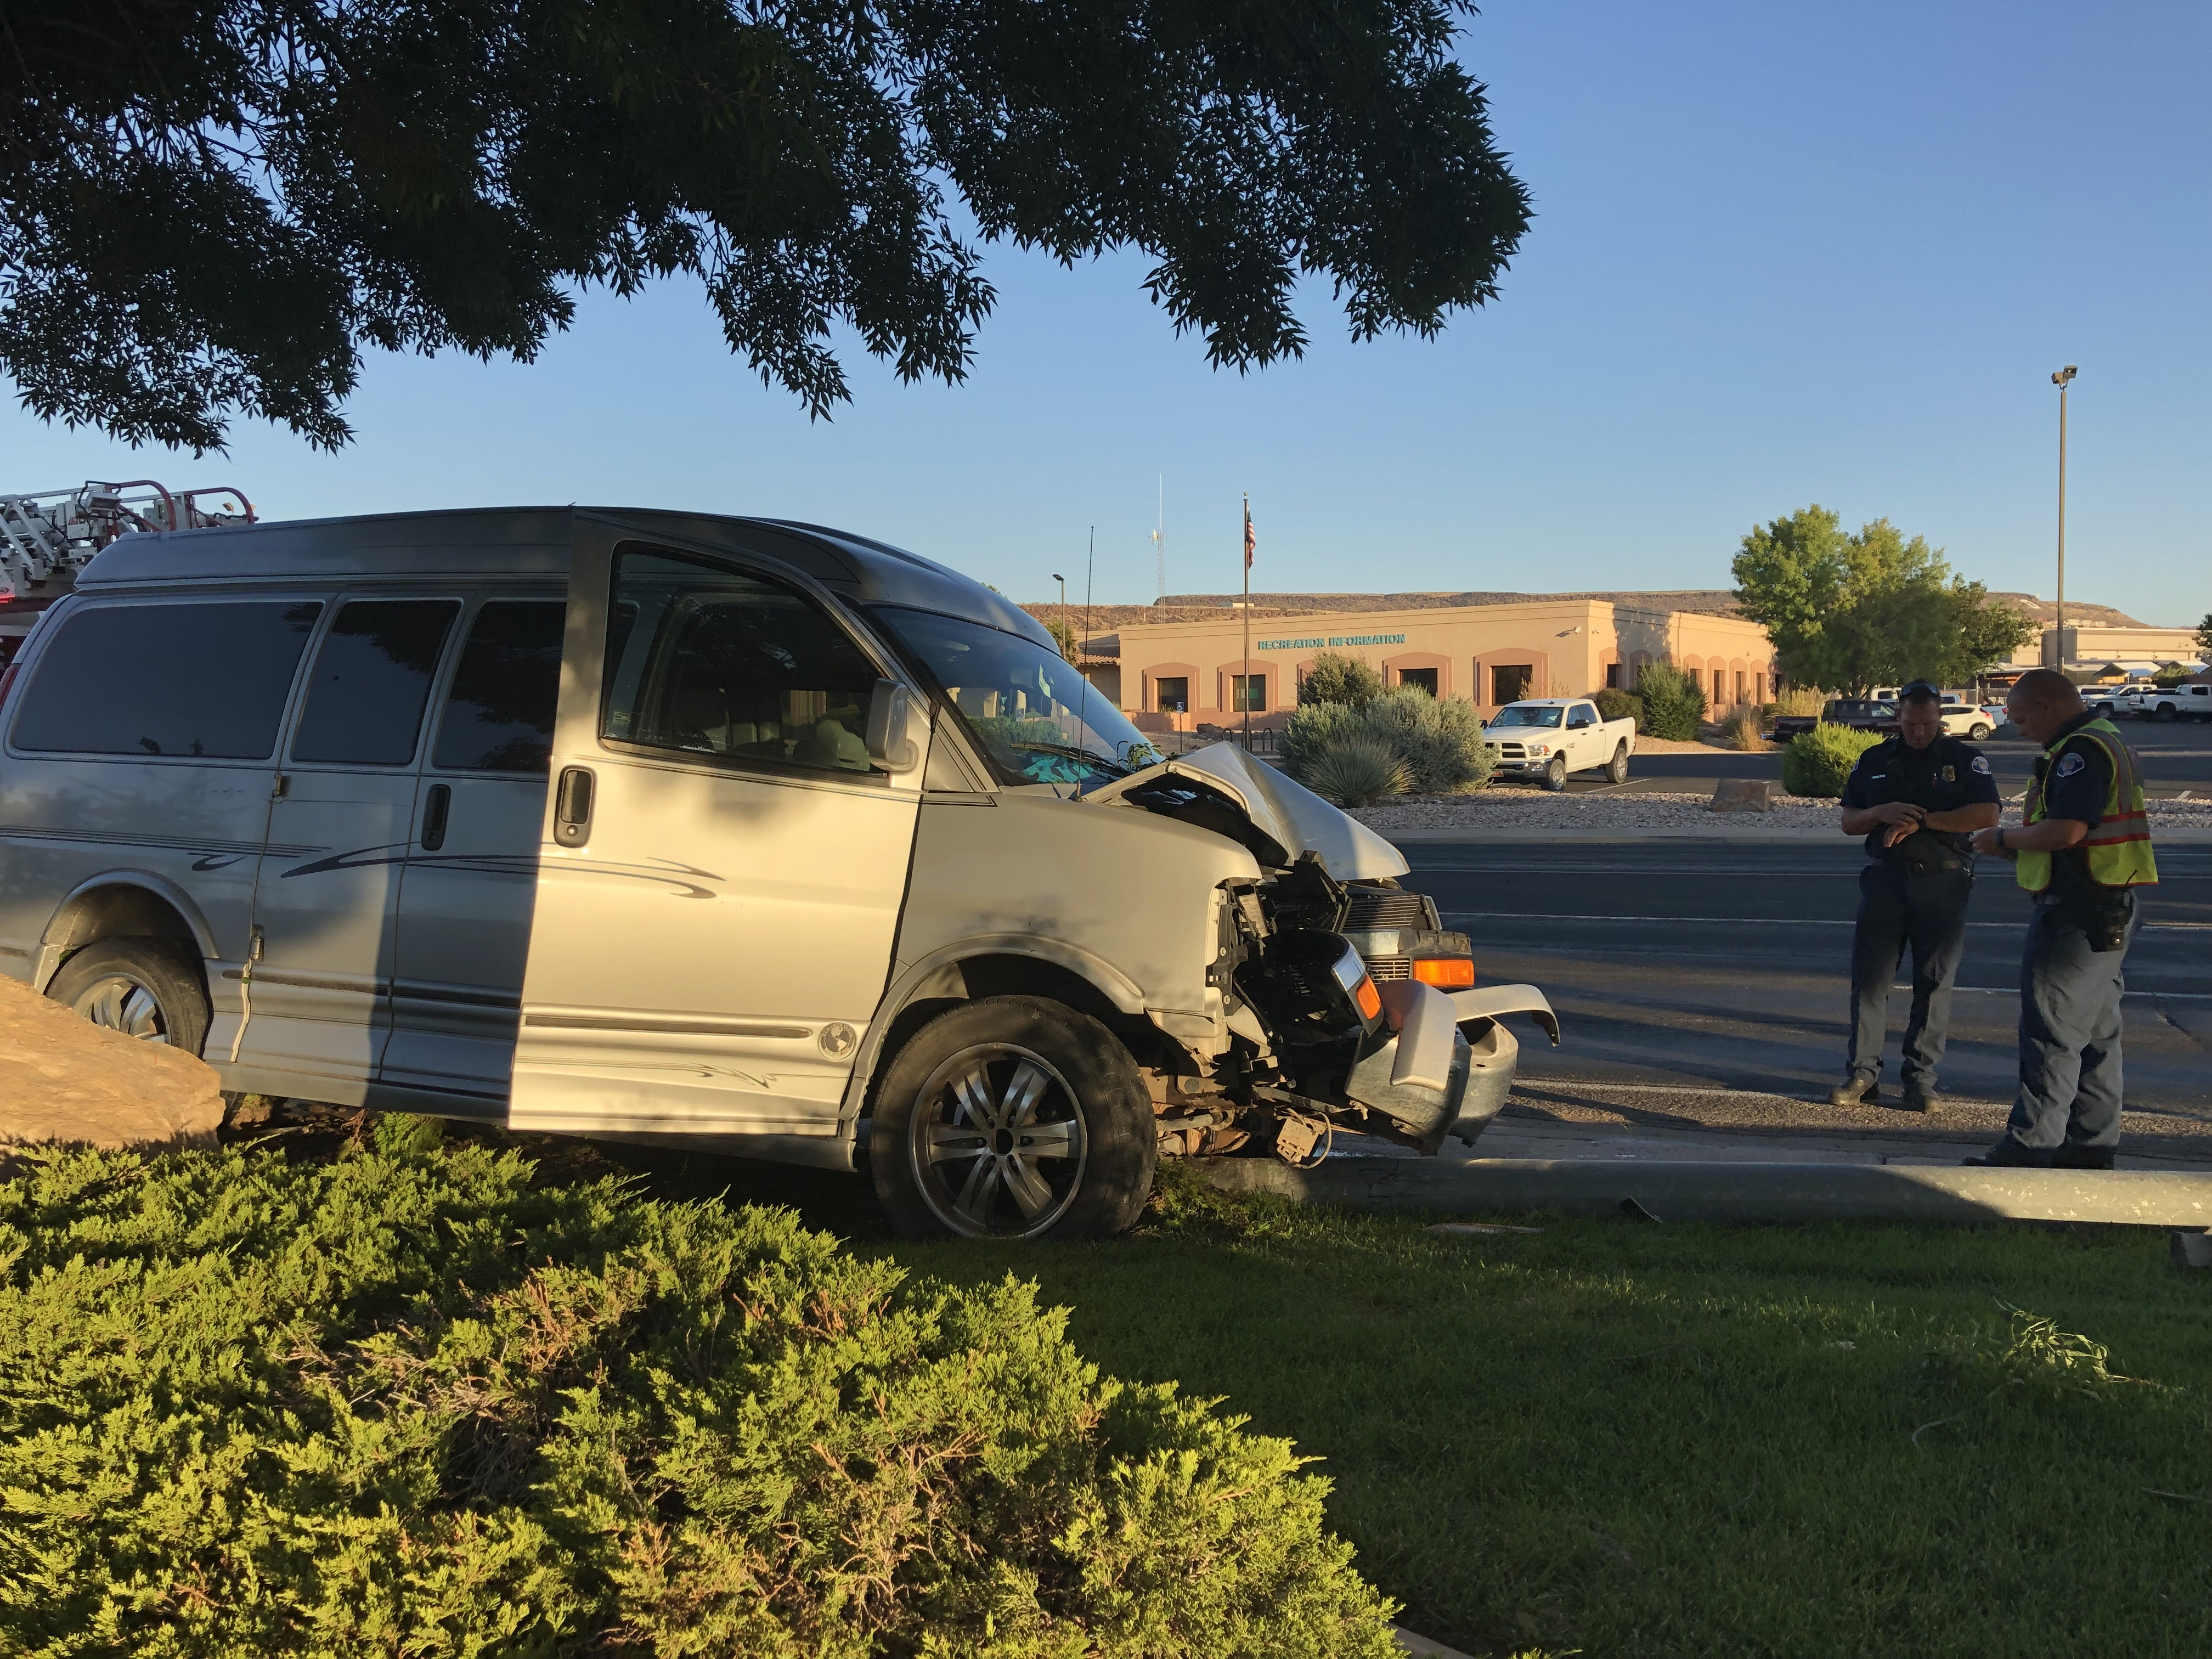 Officers Look For Man Involved In A Single Vehicle Crash Potential Drunk Driving Incident St George News